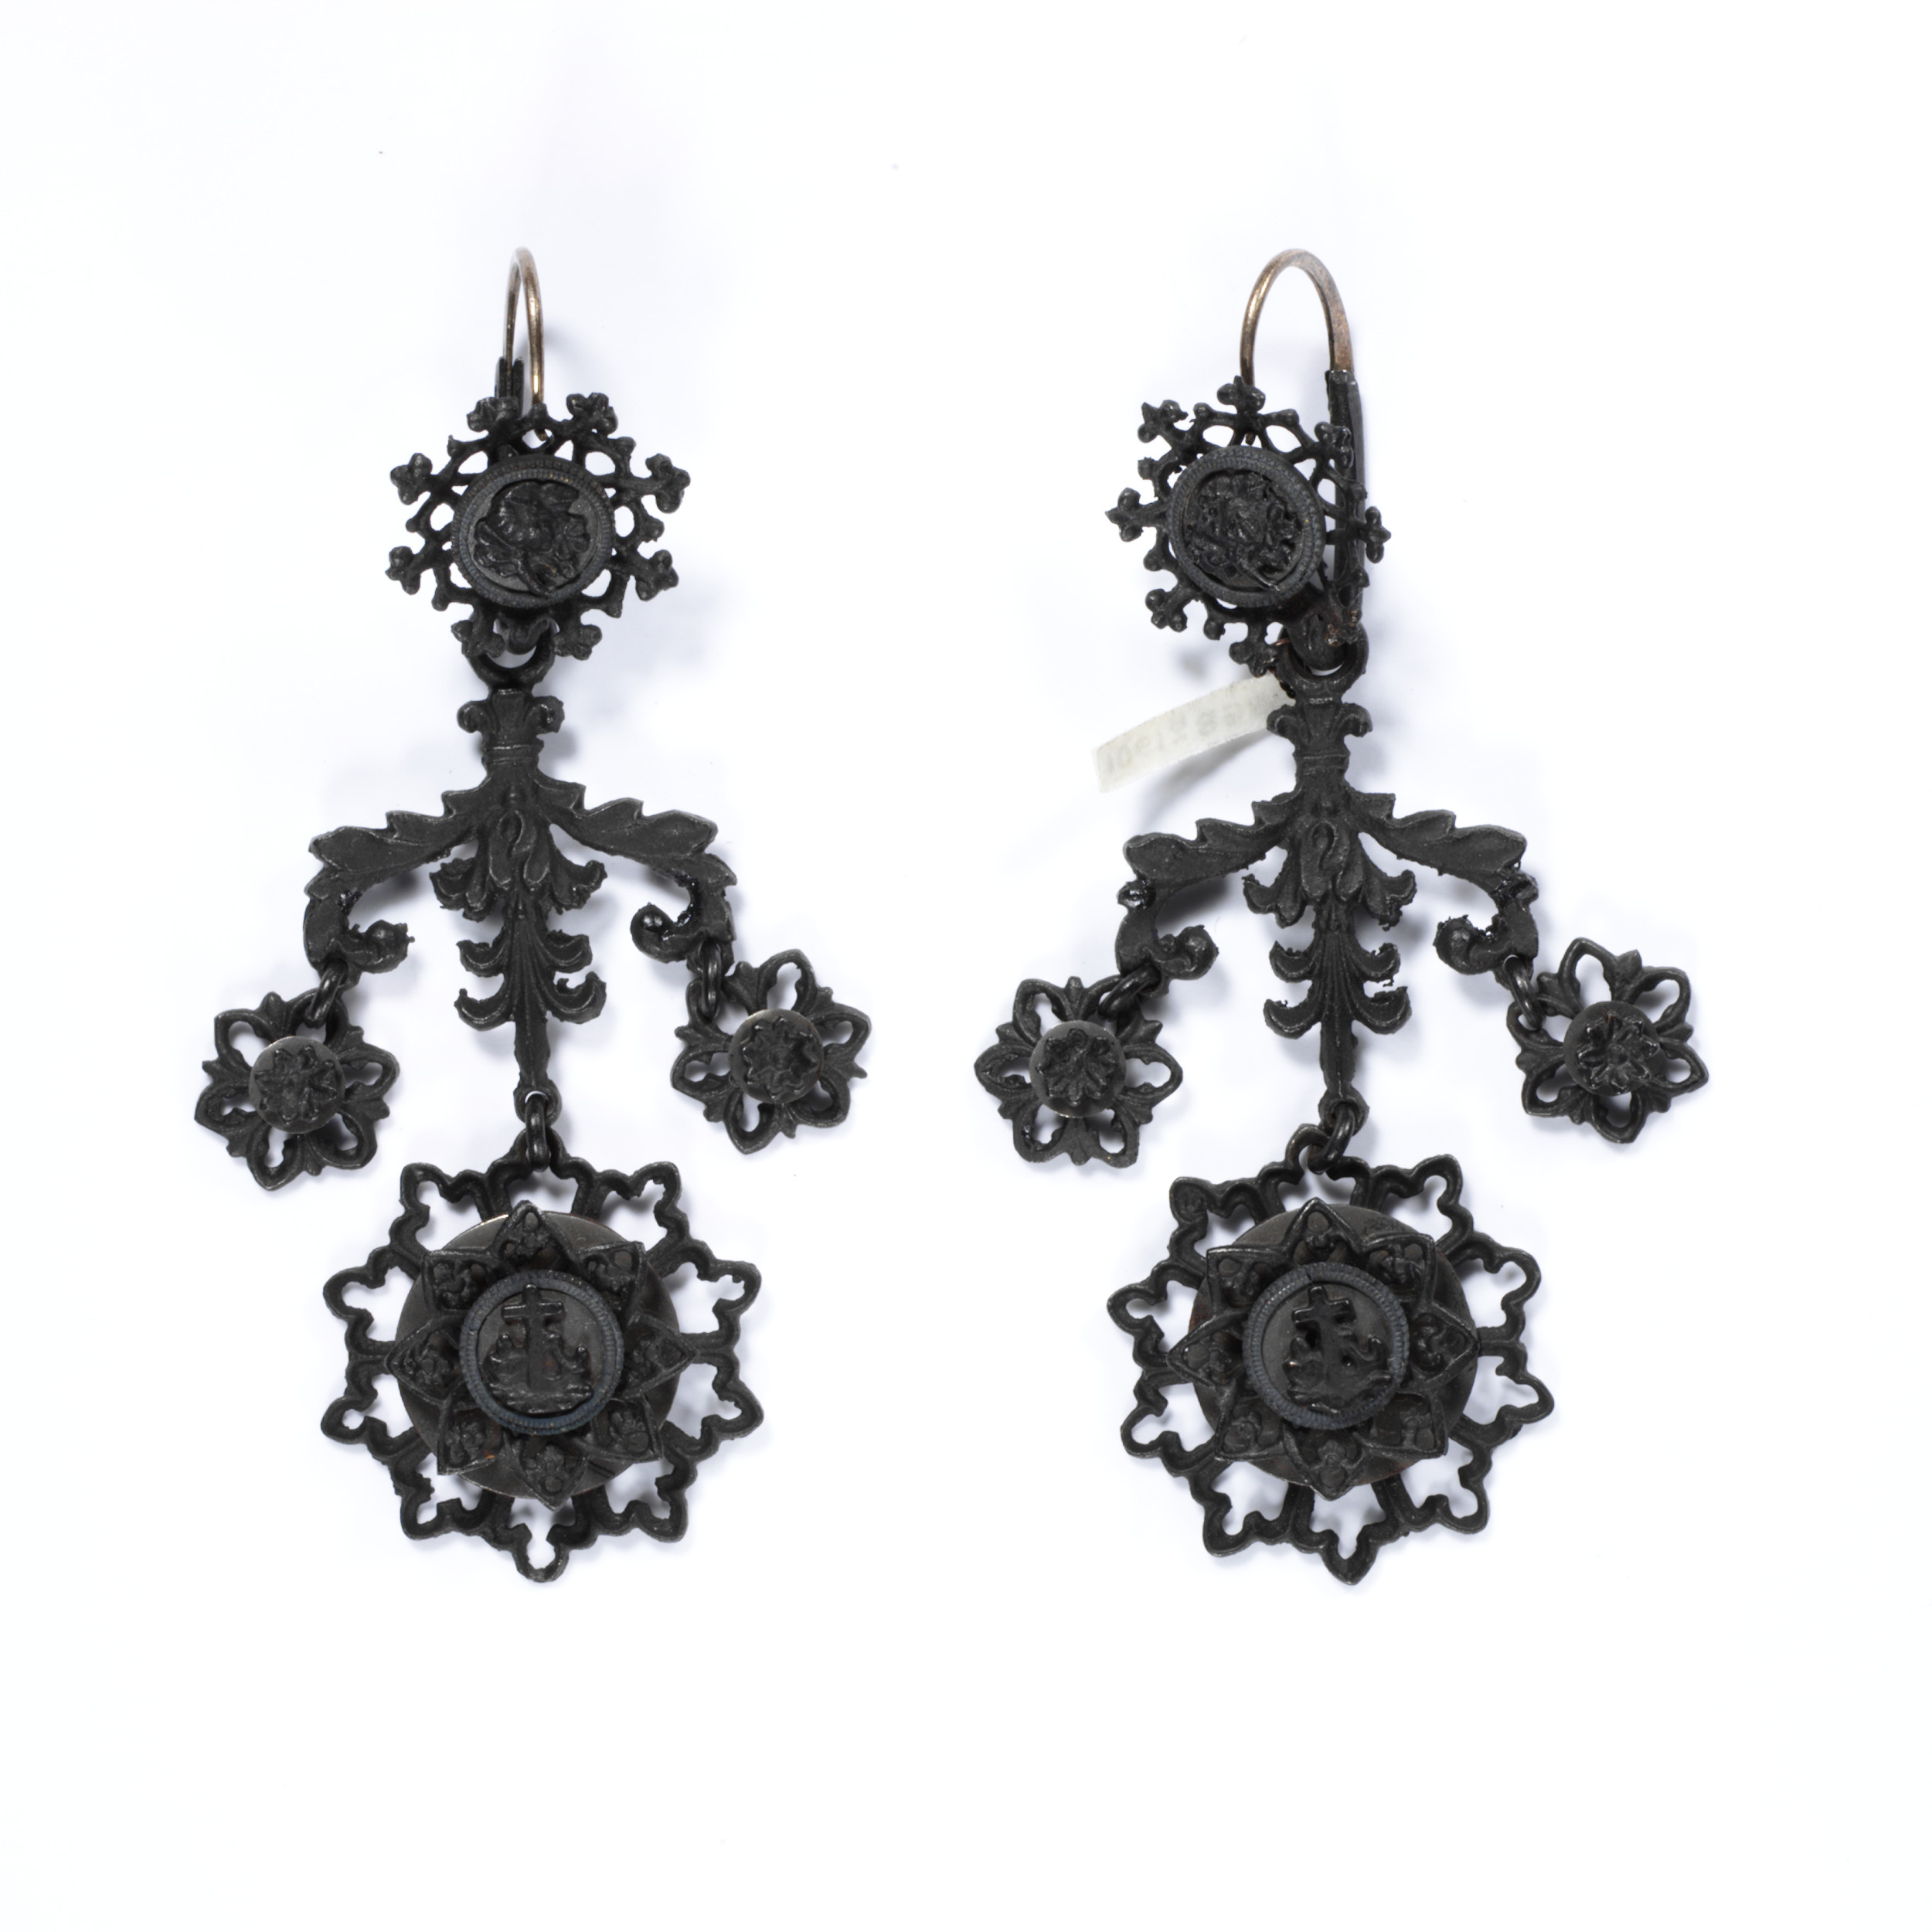 Berlin Iron and Wire Work Jewelry on Pinterest | 41 Pins